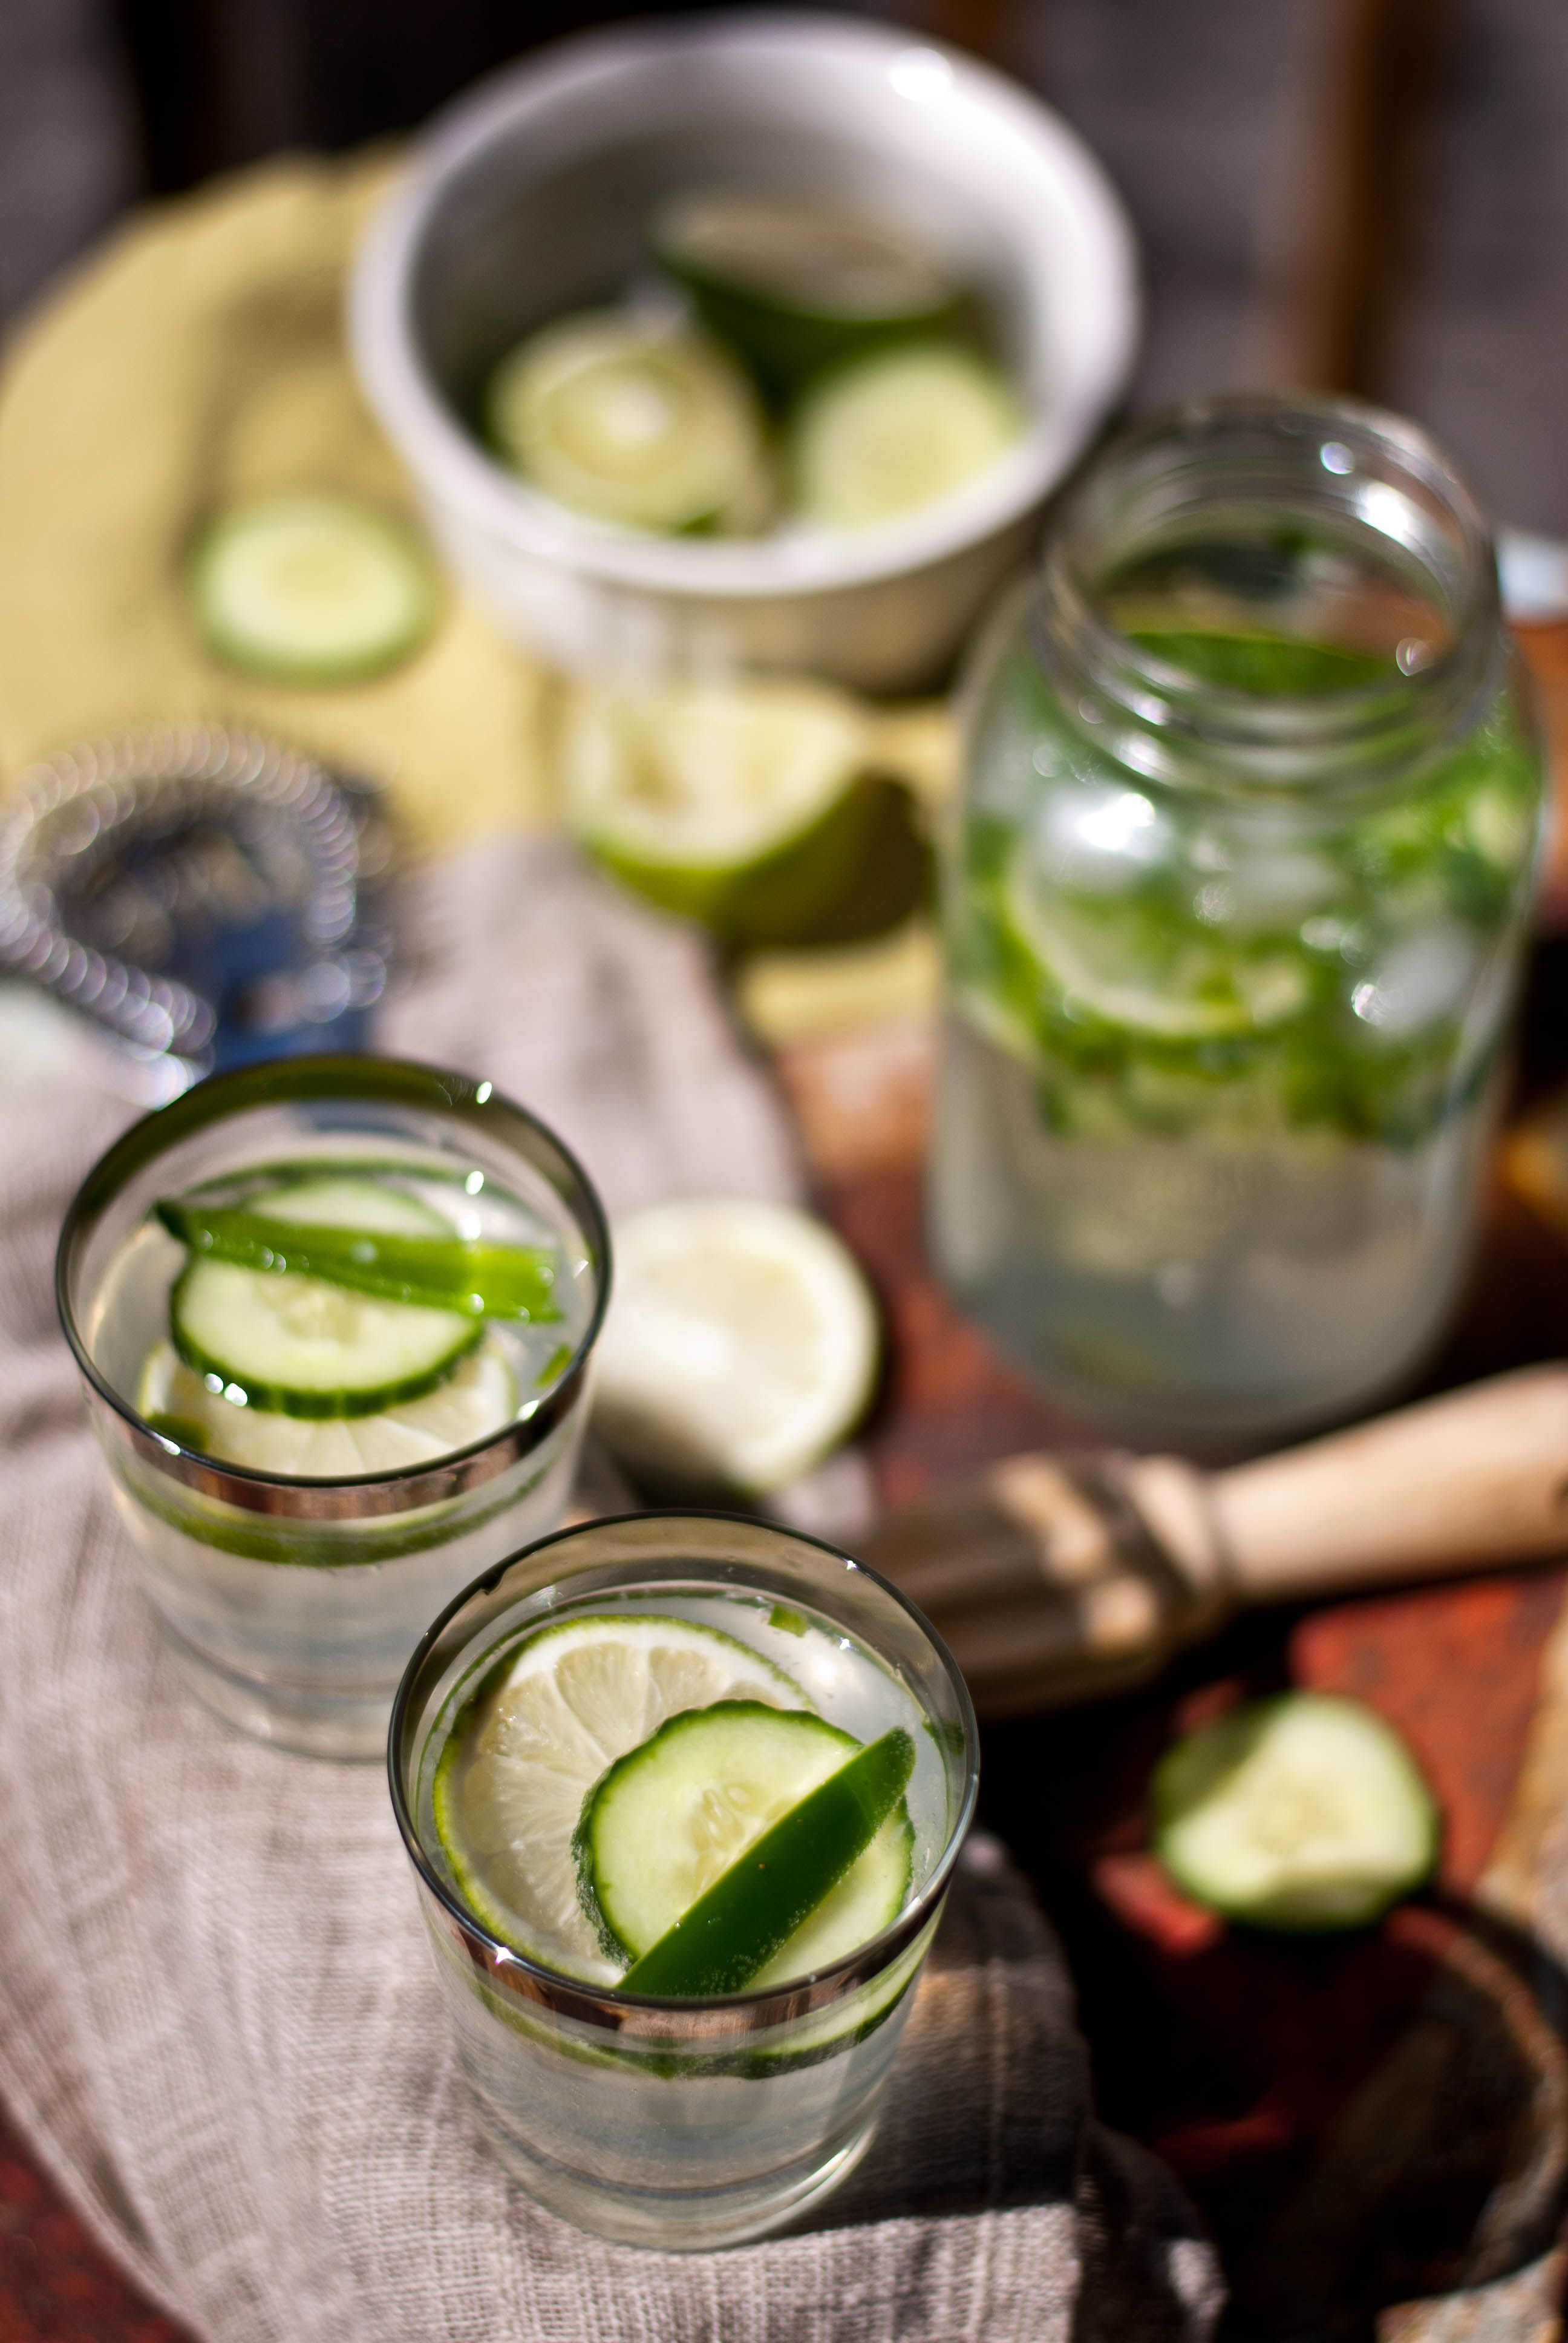 Jalapeno/Lime/Cucumber Infused Gin Fizz | Food & Drinks | Pinterest